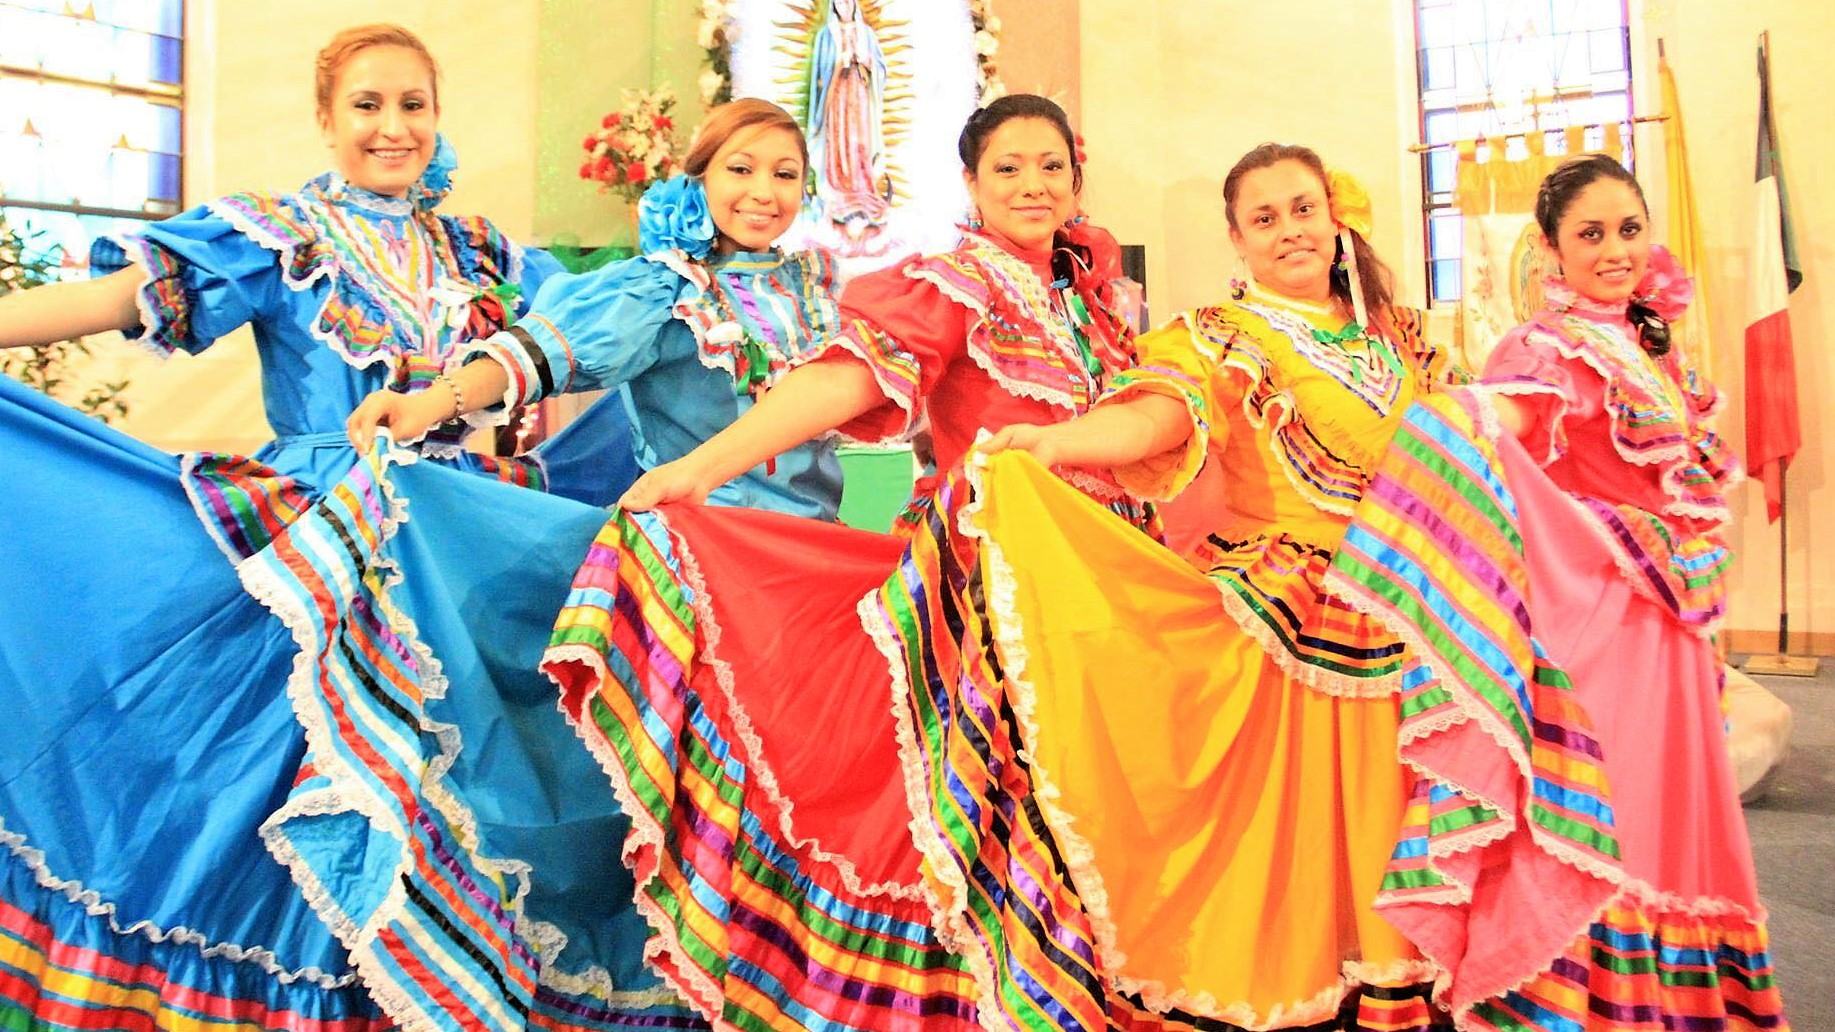 Folkloric Dance Group  11:30 a.m.